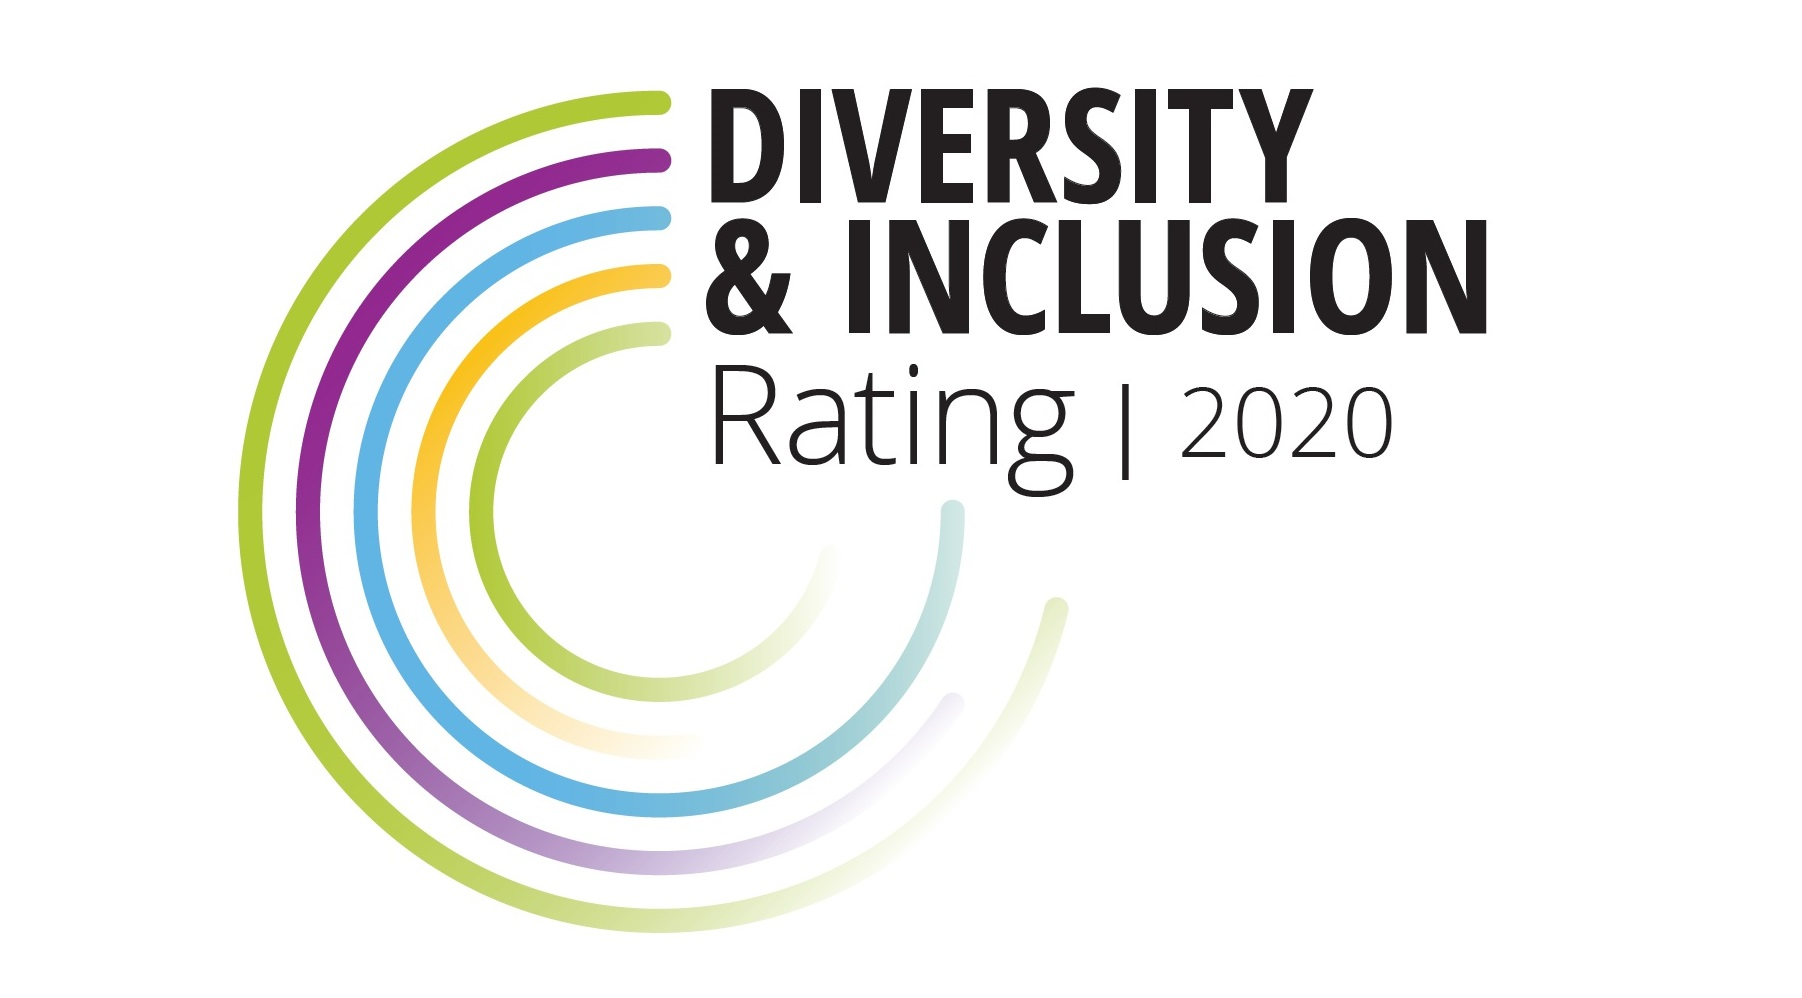 diversity inclusion rating